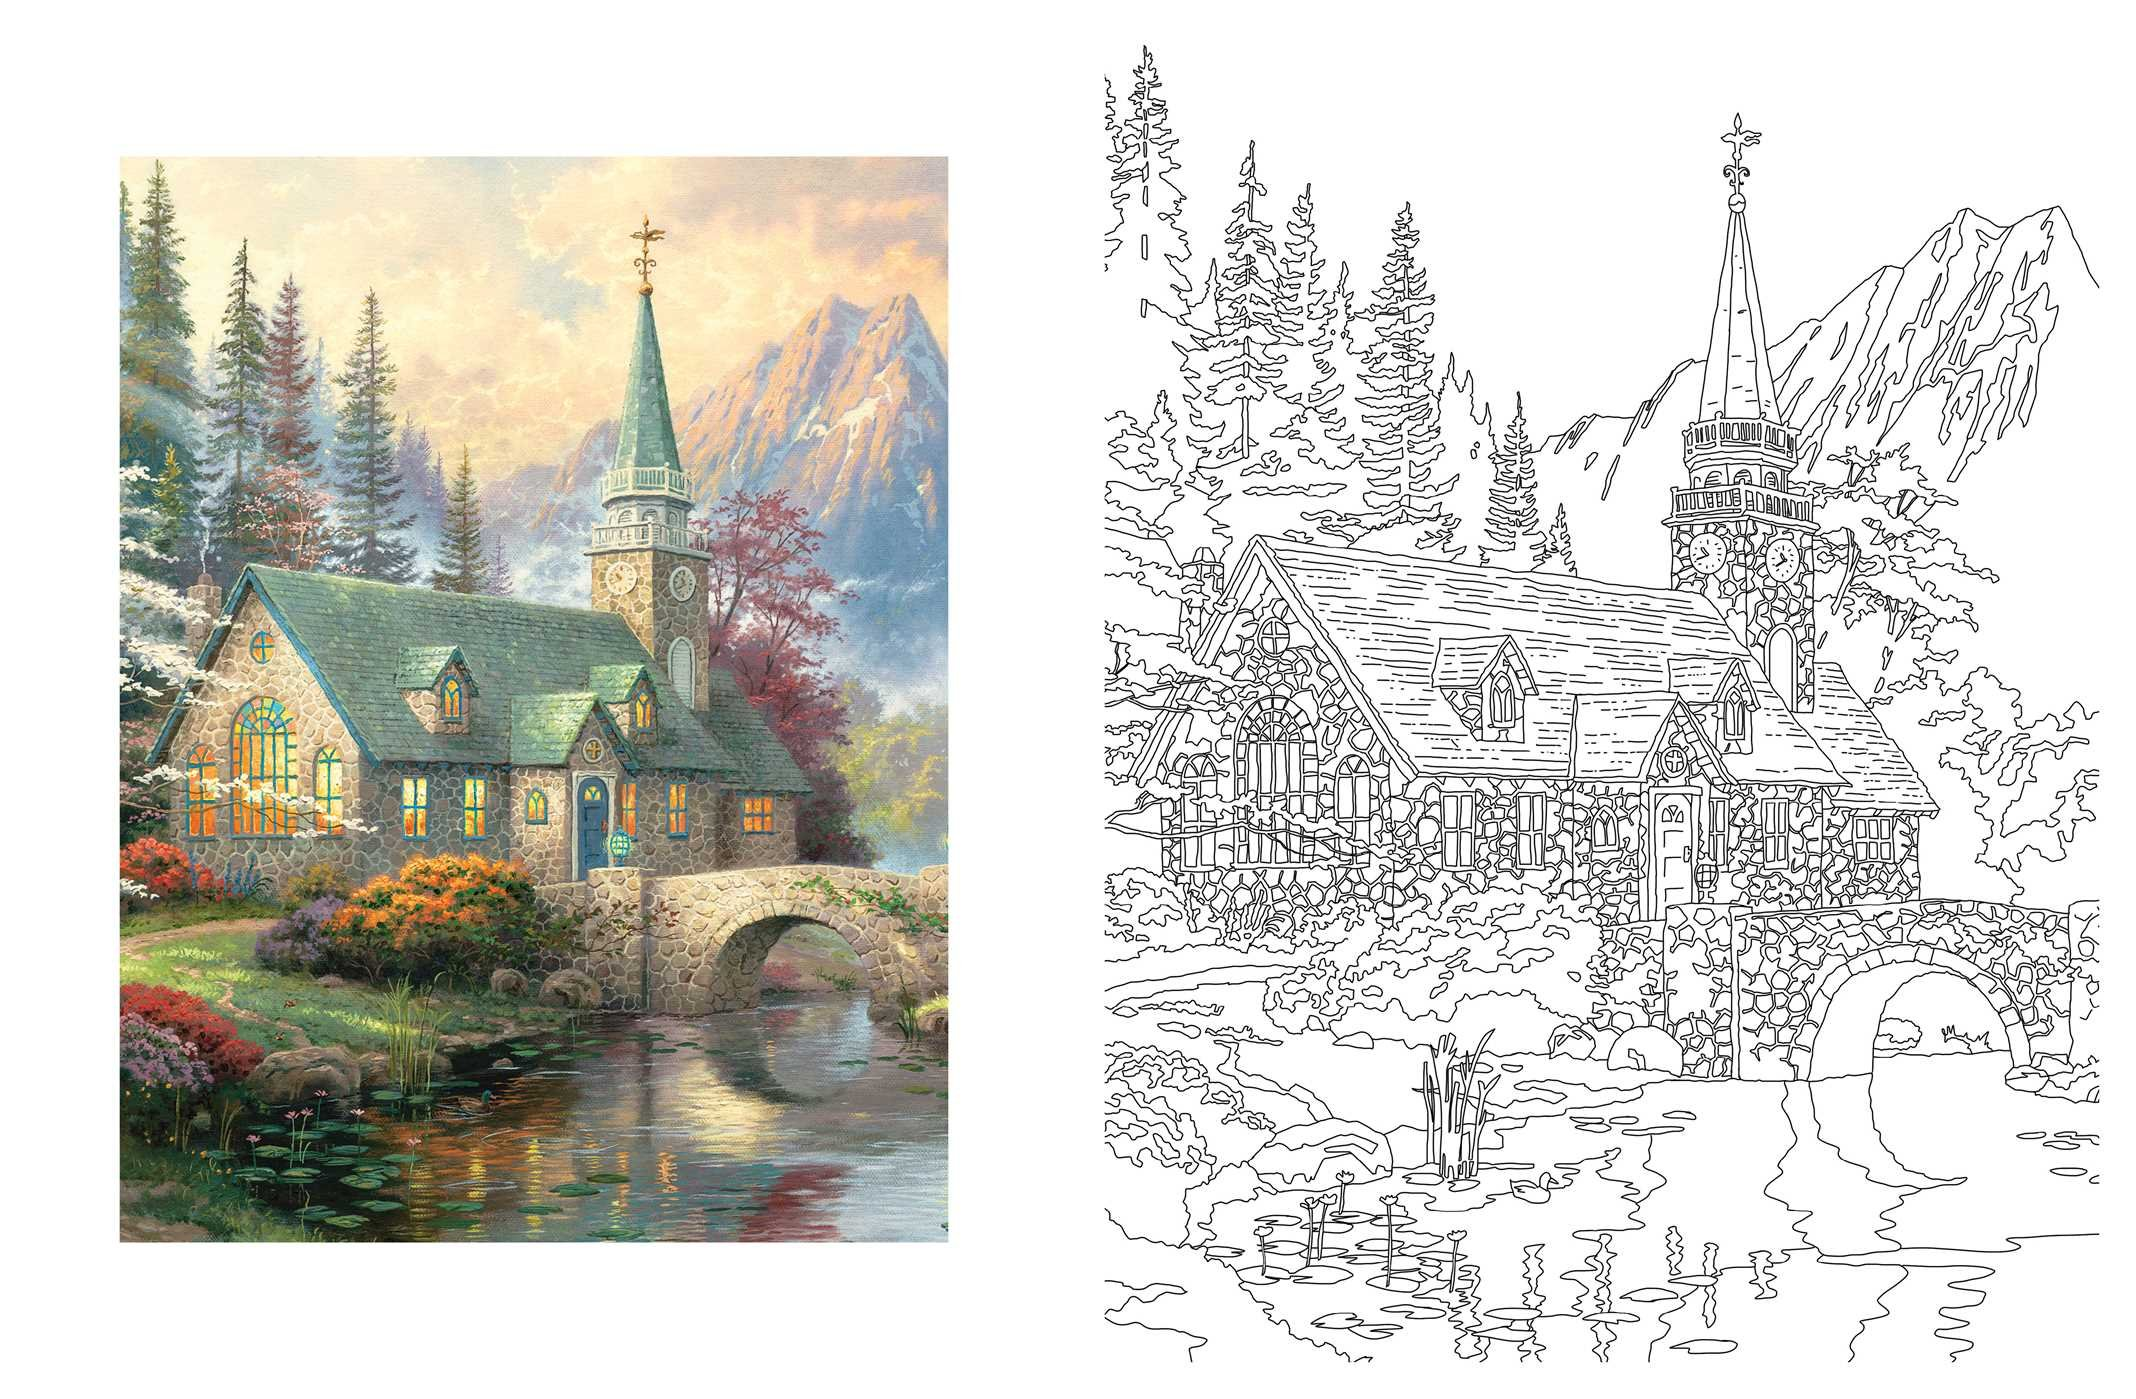 Amazon.com: Posh Adult Coloring Book: Thomas Kinkade Designs for ...